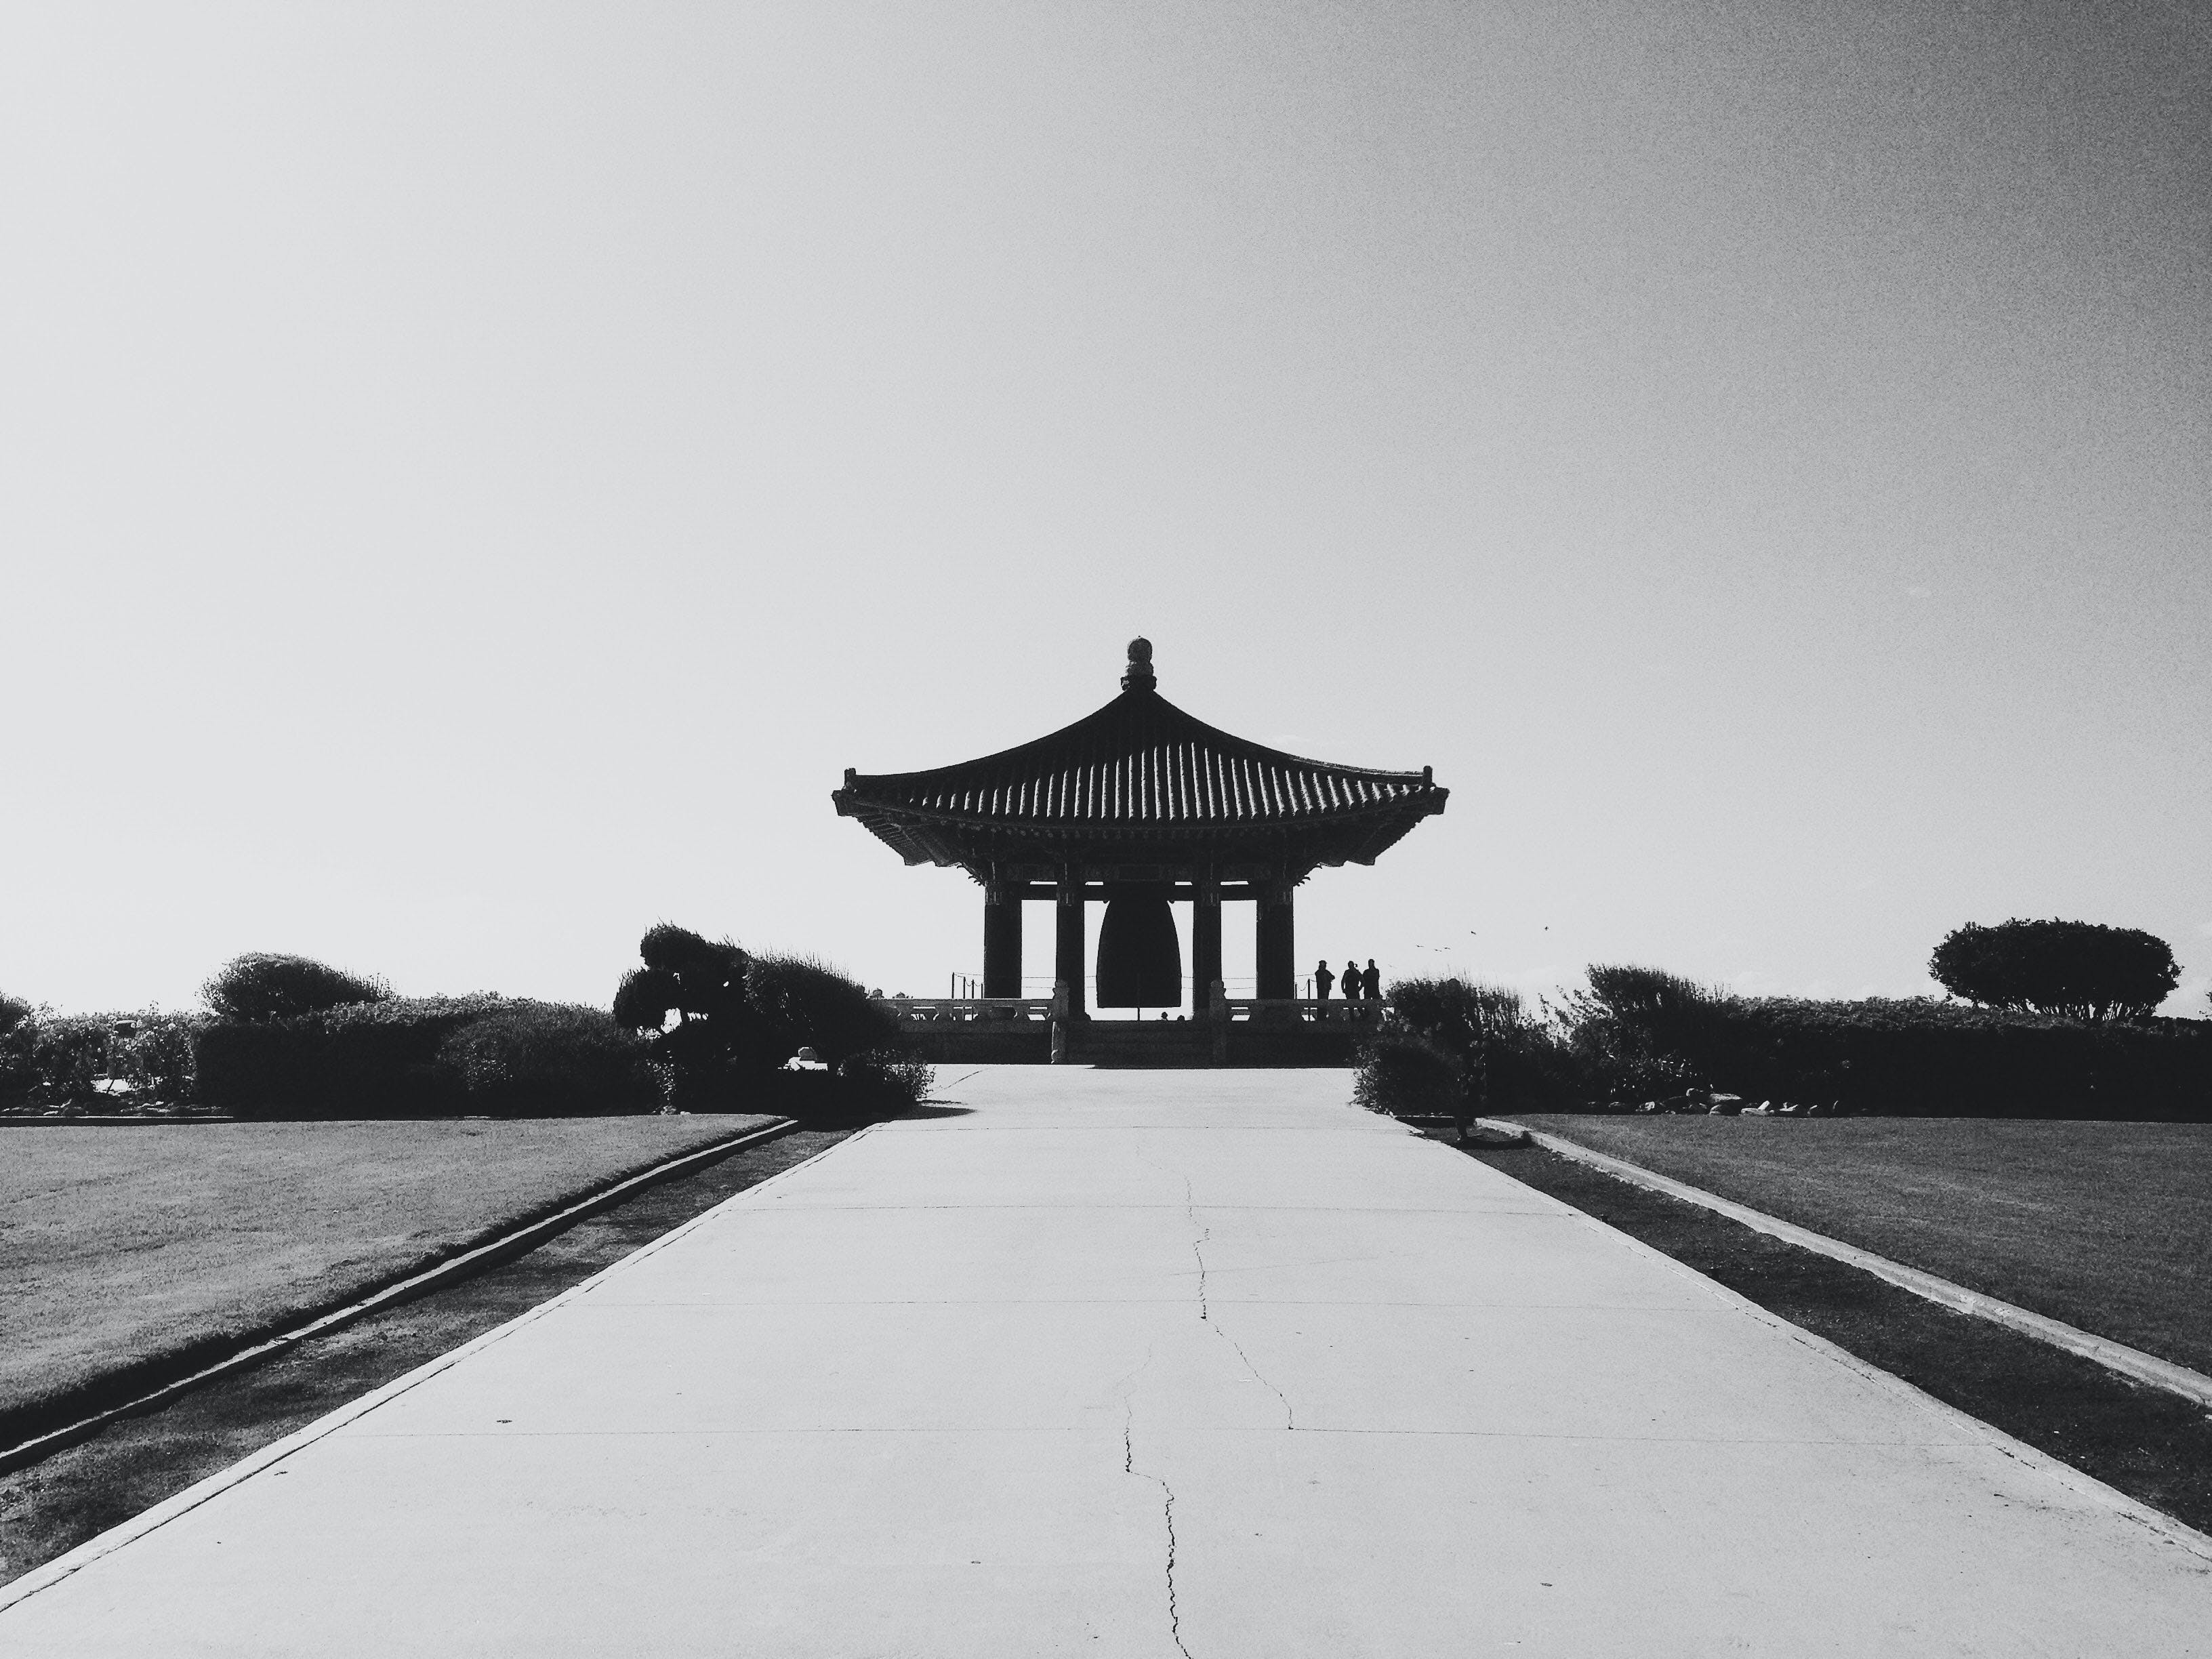 Free stock photo of black-and-white, architecture, Asian, asia